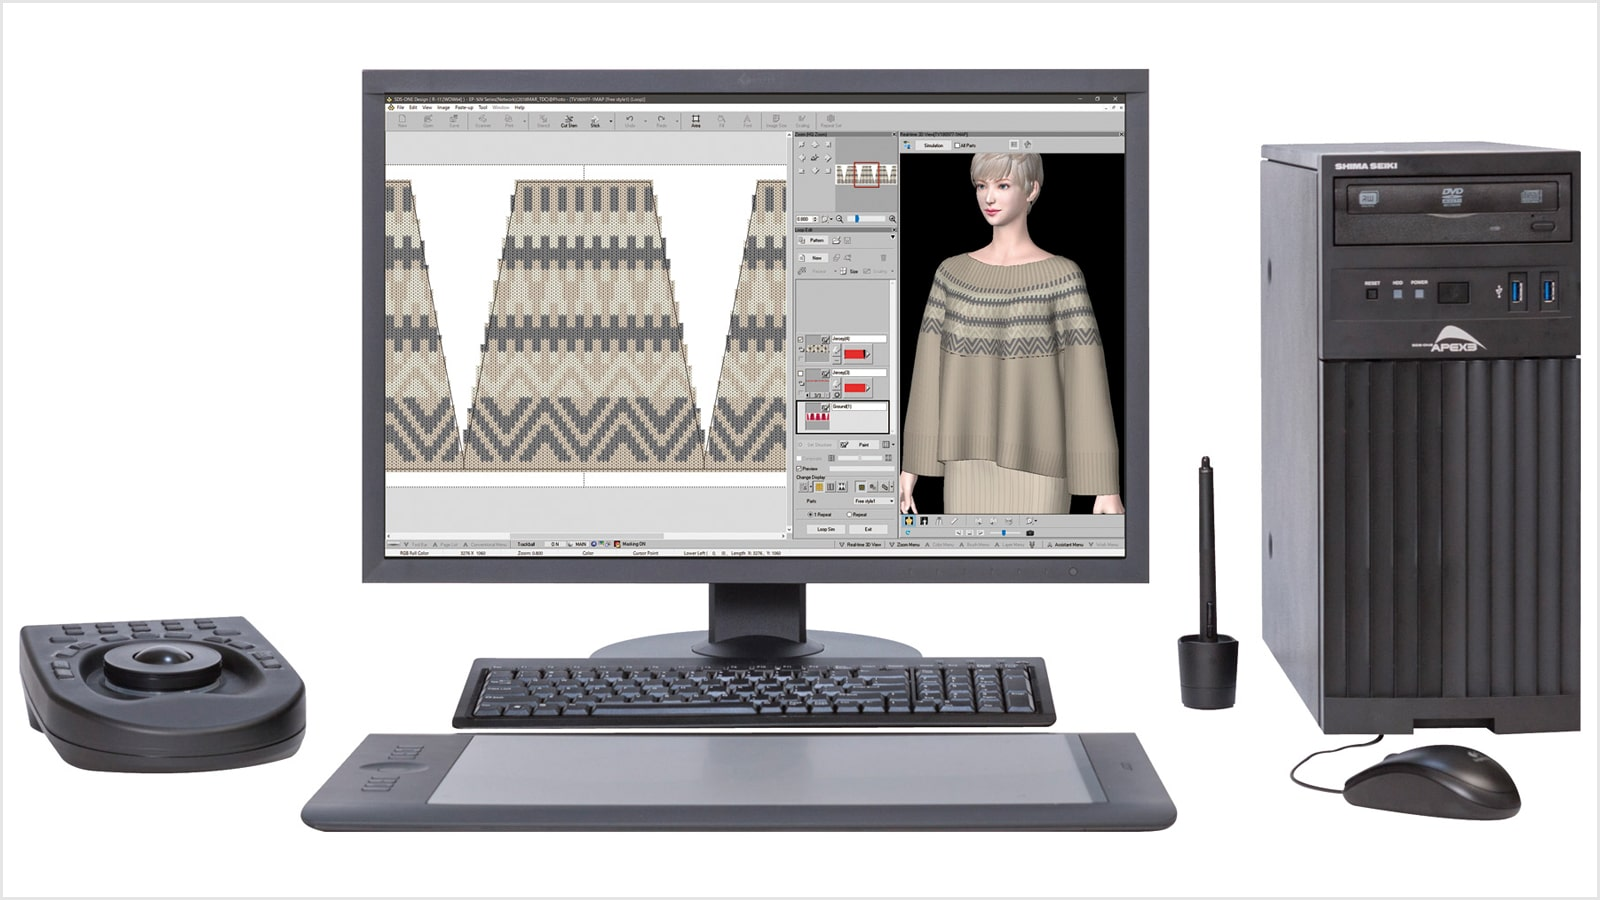 Shima Seiki set to expand its reach as it debuts at China's Knitting Fair